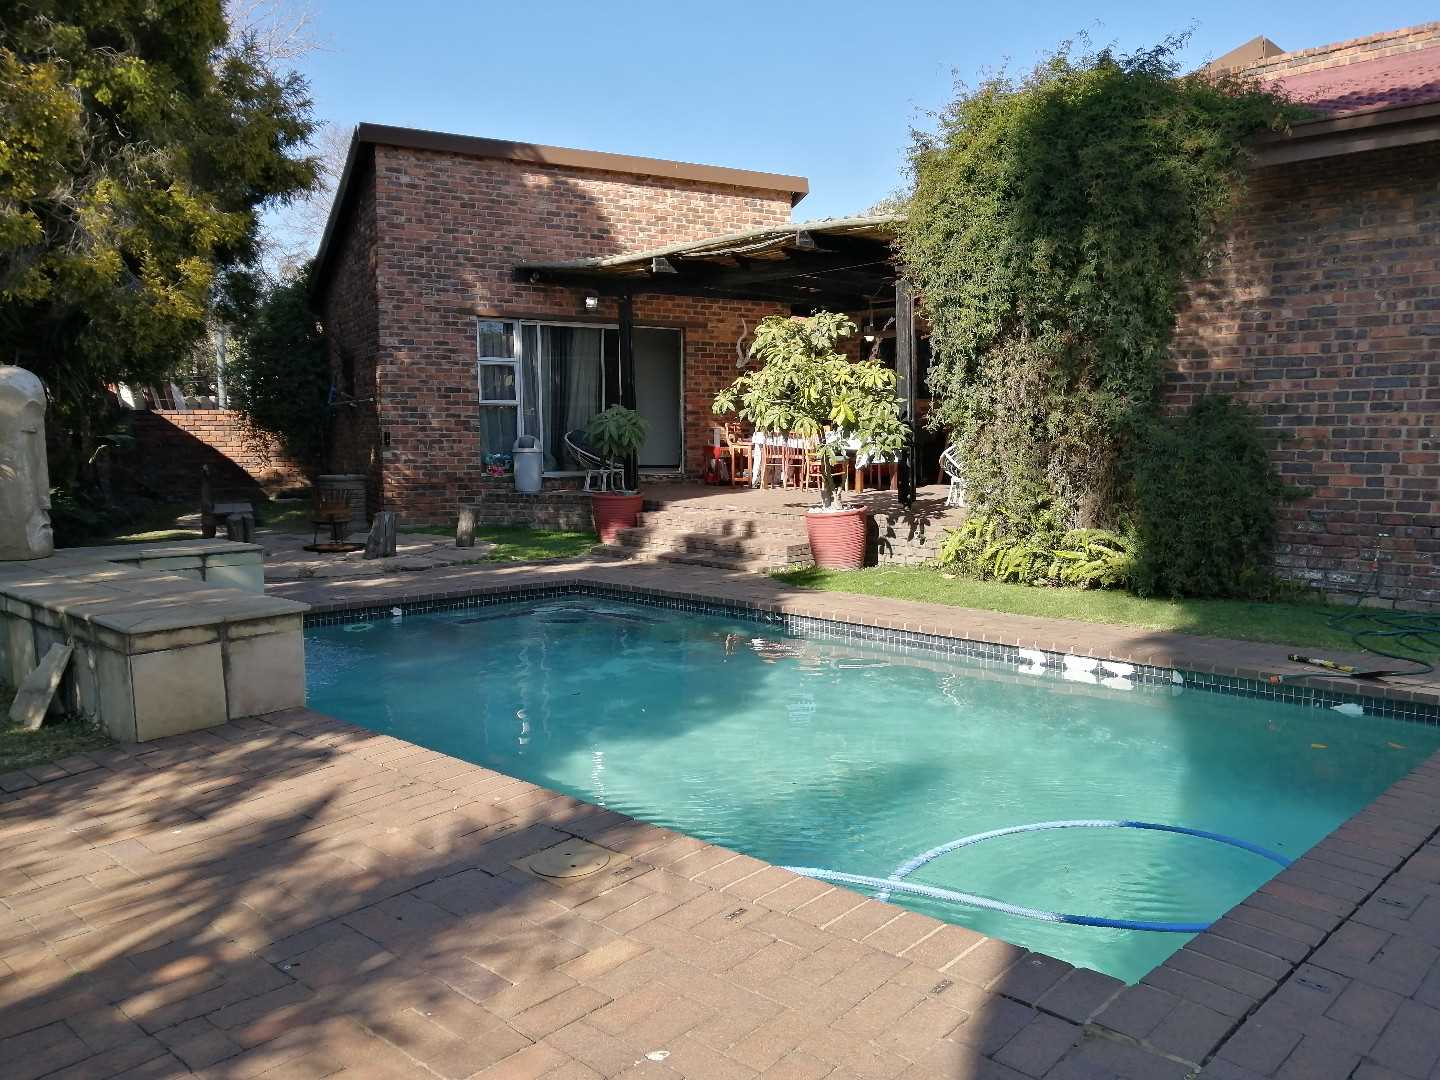 5-Bed 3-Bath Family Home in Enclosed Edleen